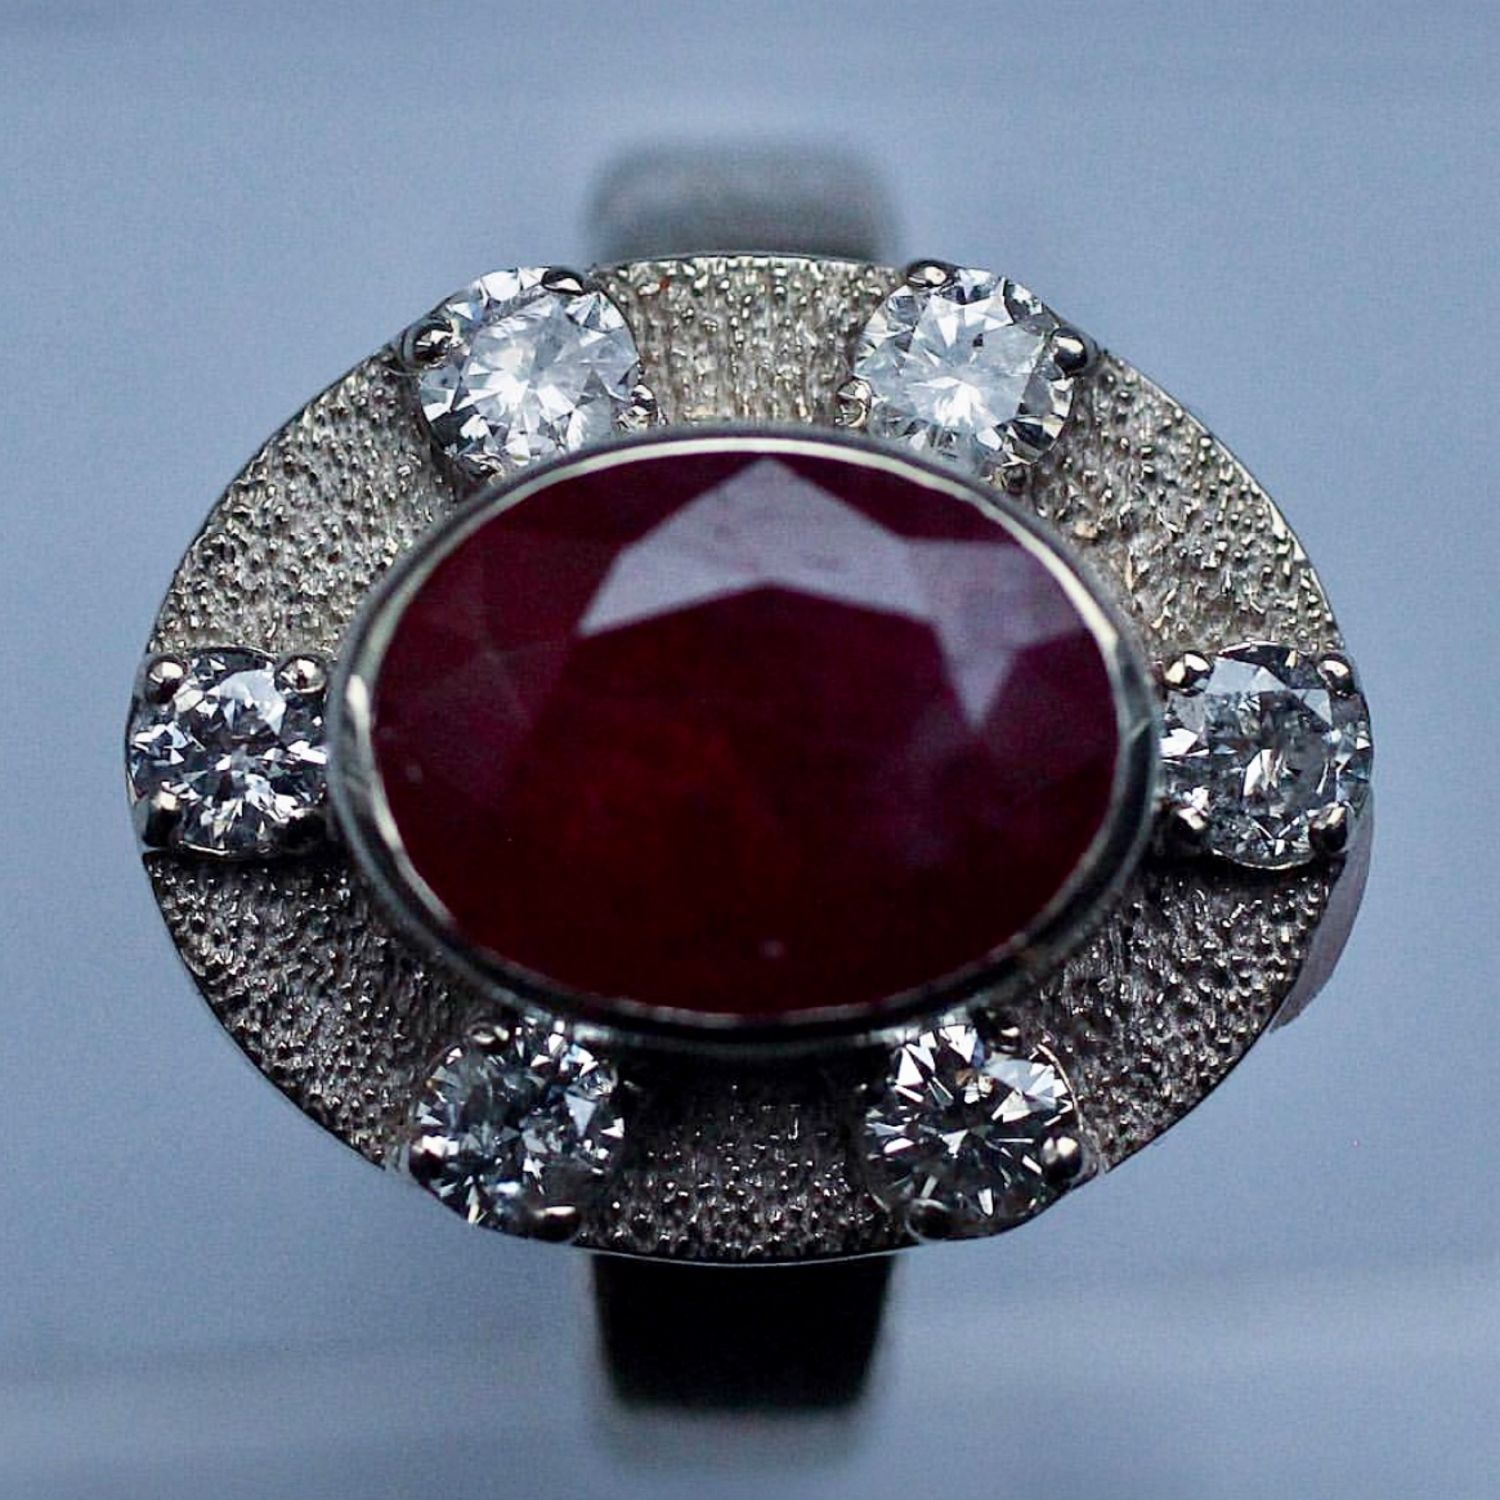 'Vienna' ring with ruby and diamonds, Rings, Moscow,  Фото №1